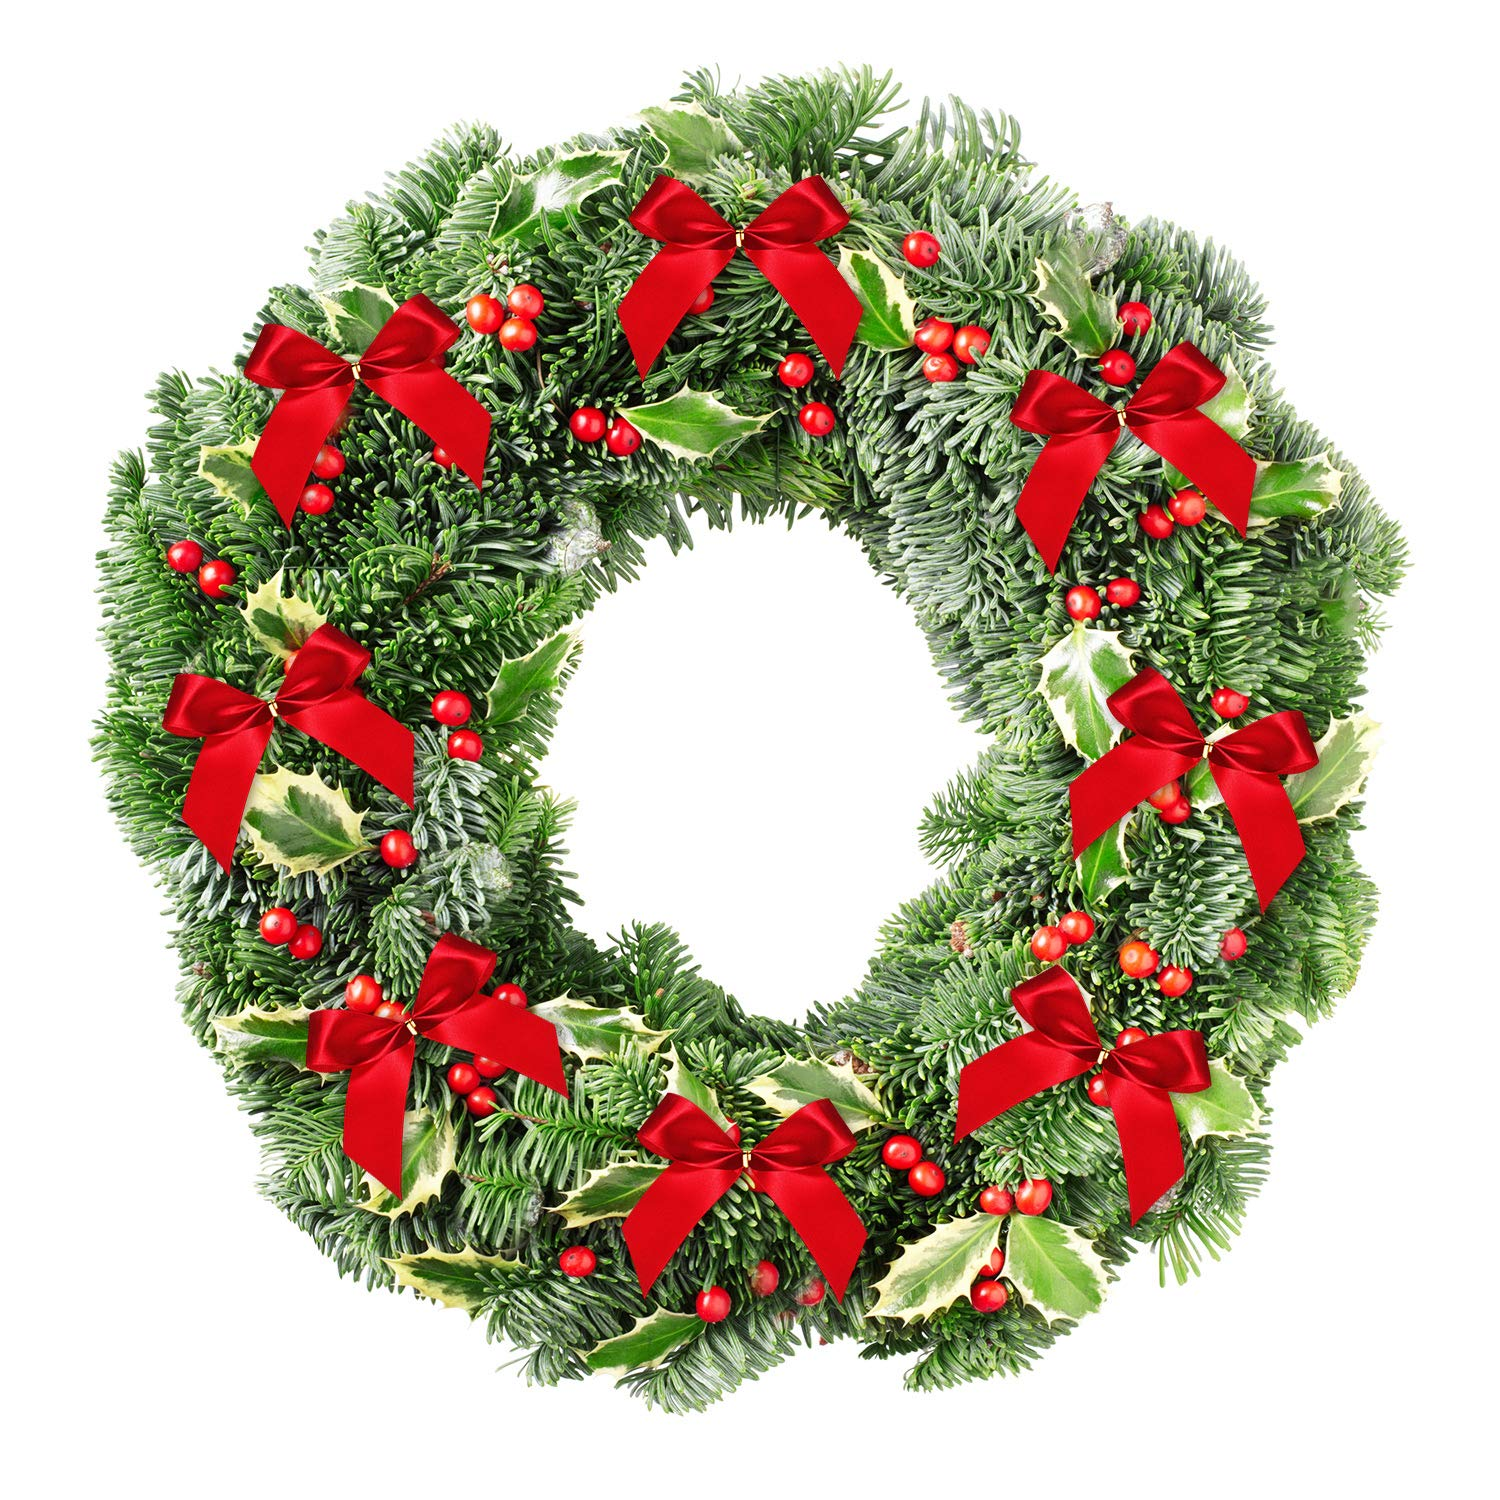 Red, Size S, 48 Pieces Christmas Wreath Gift Decoration Sumind Christmas Bow Ribbon Bow for Christmas Tree